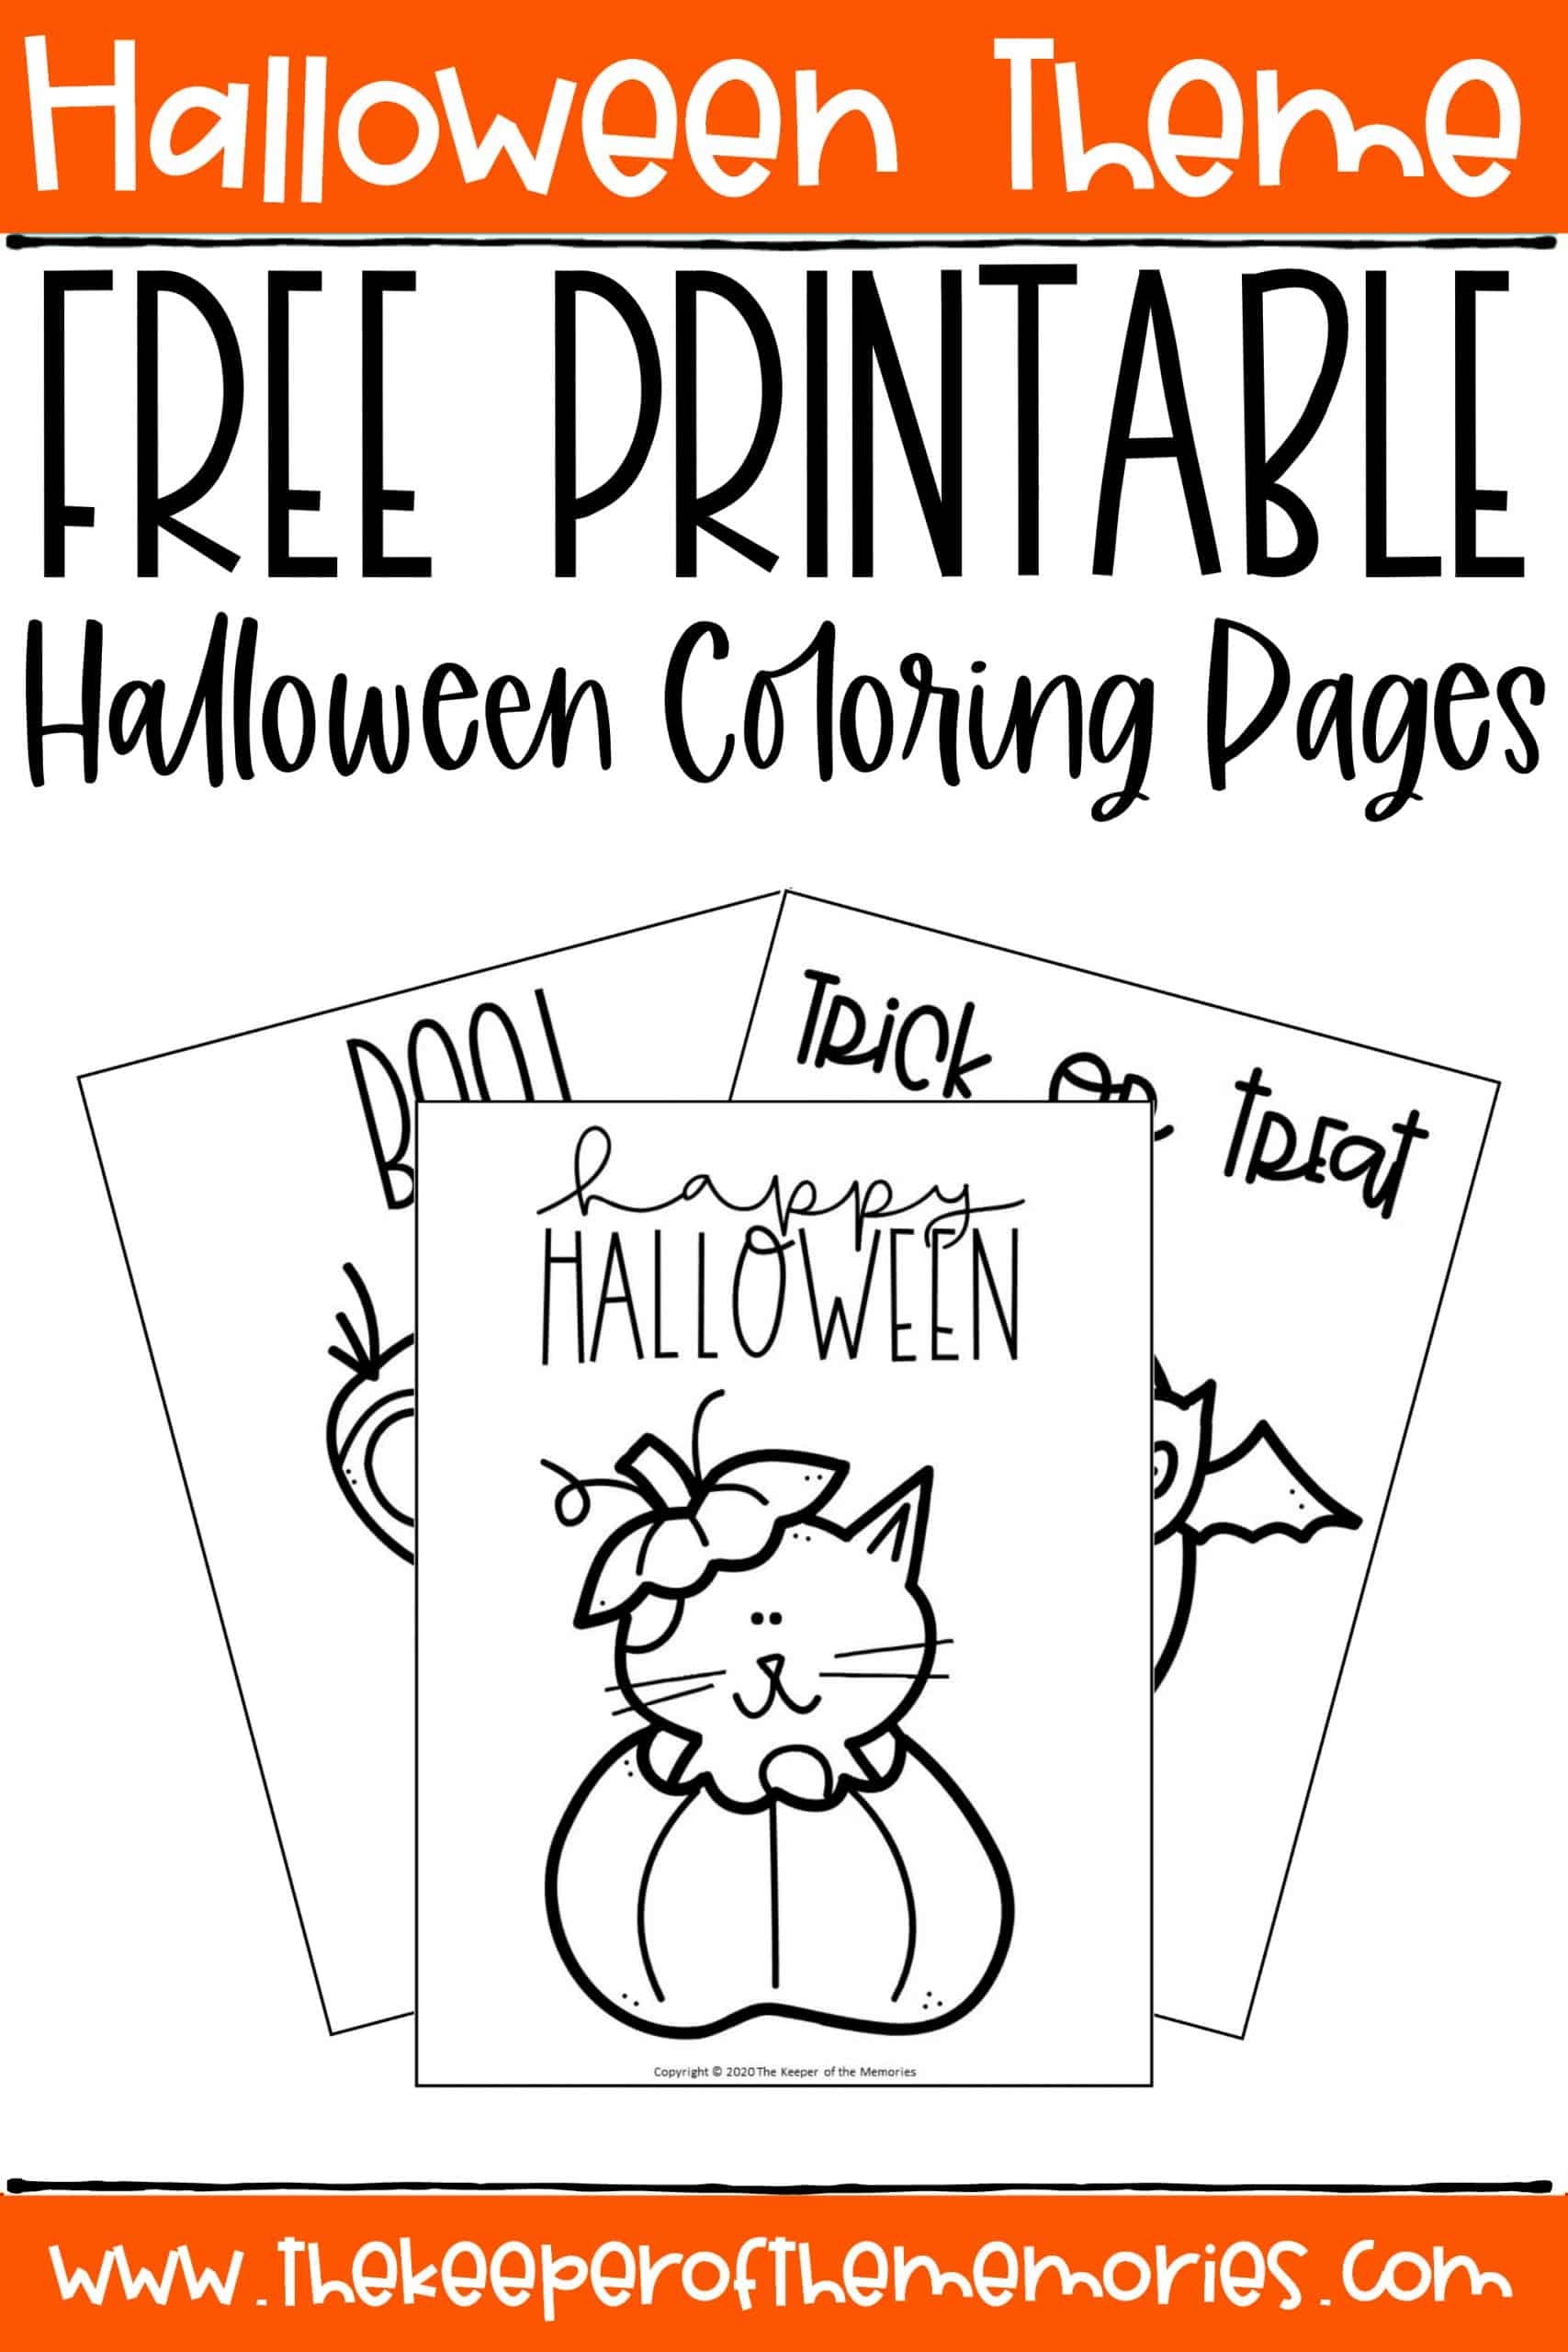 Free Printable Halloween Coloring Pages - The Keeper of ...